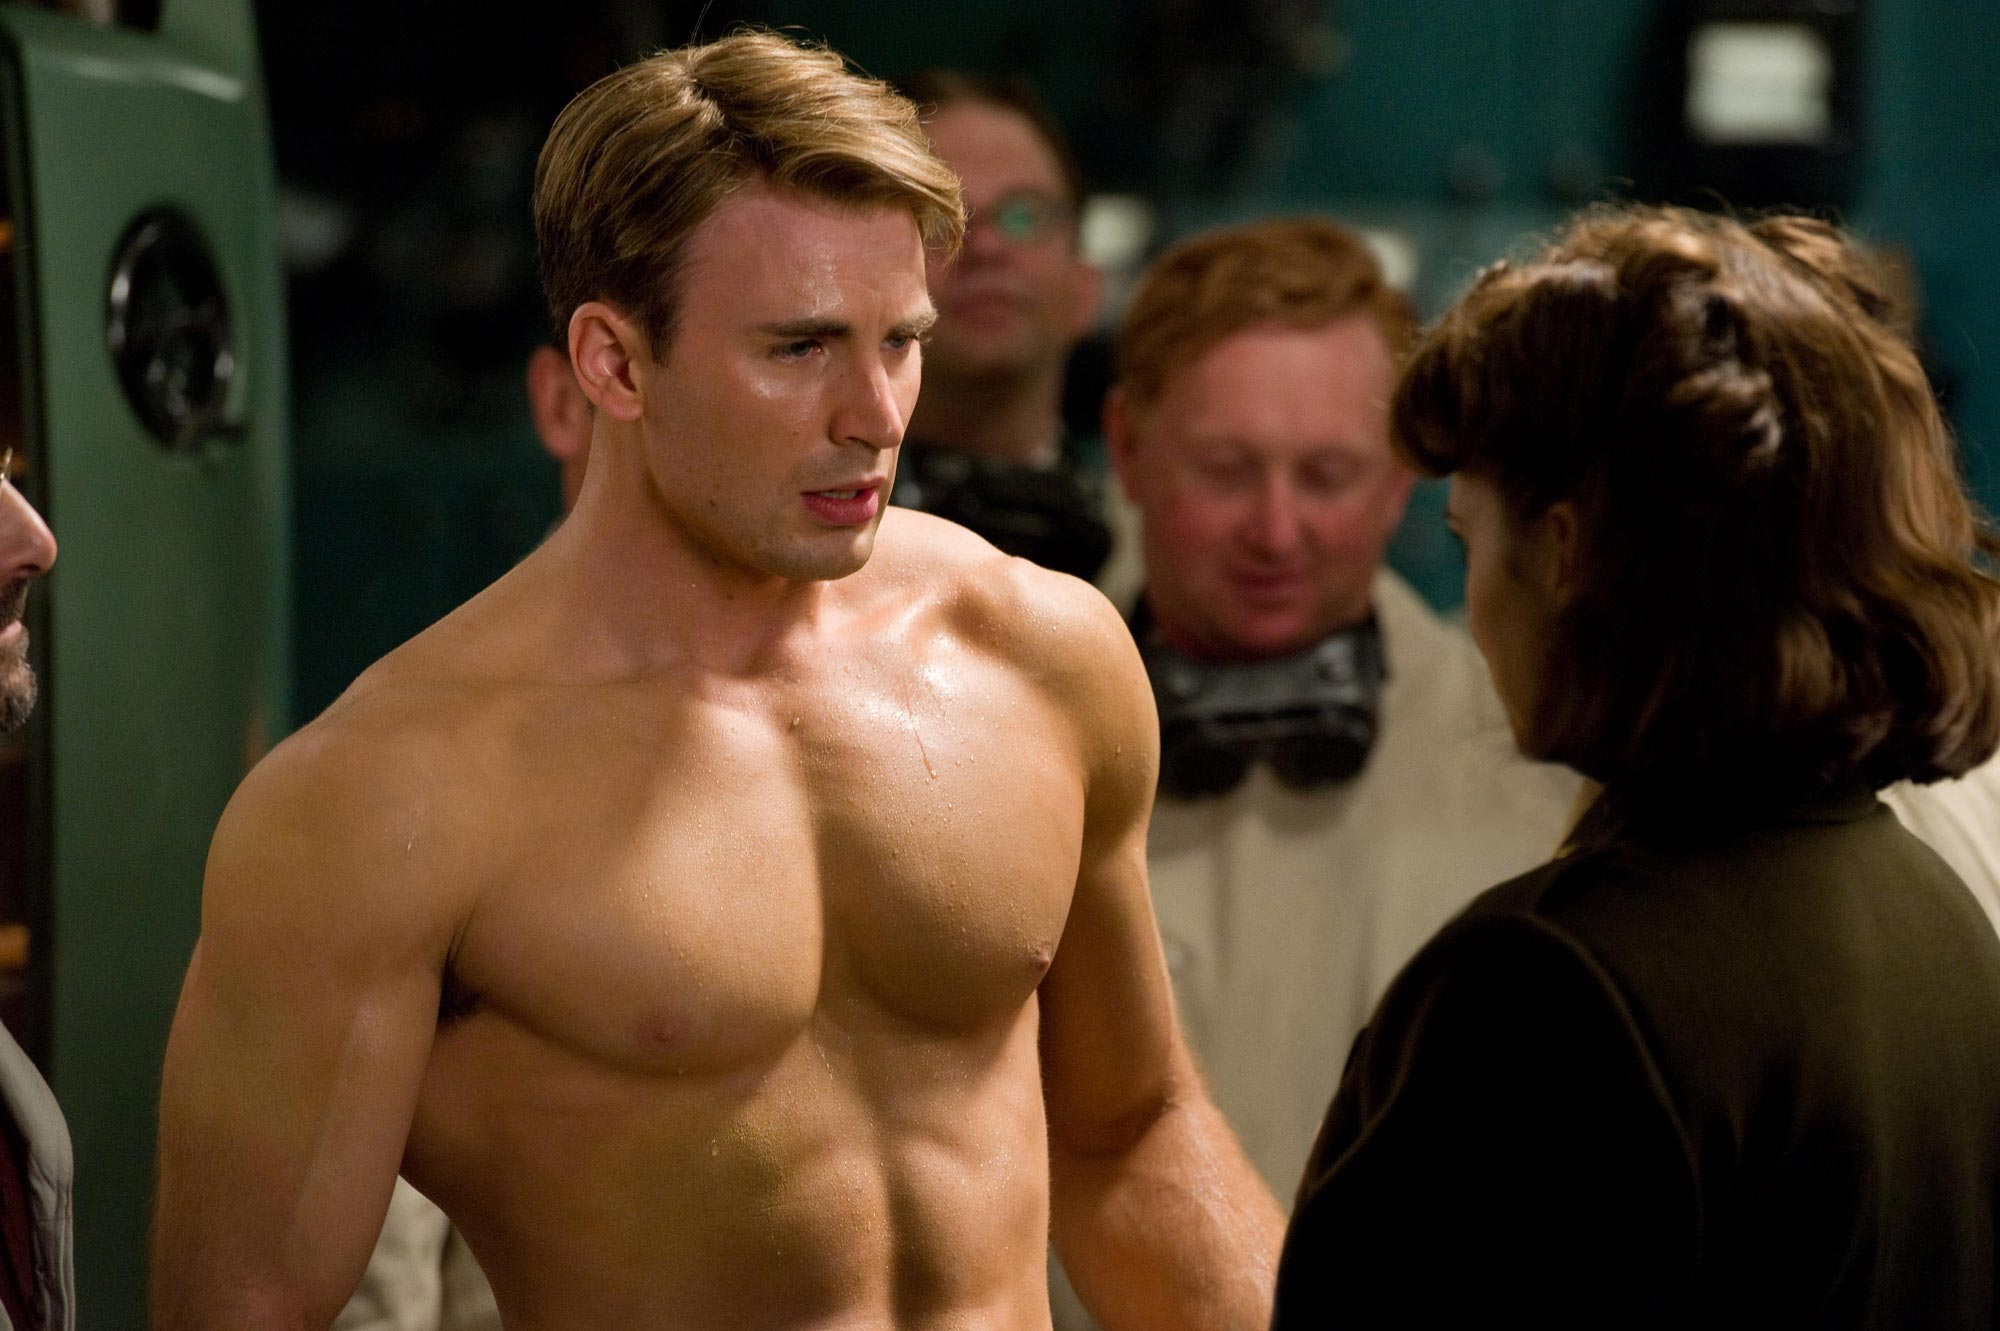 Jc Lewis Ford >> Chris Evans, Captain America: The First Avenger - FilmoFilia